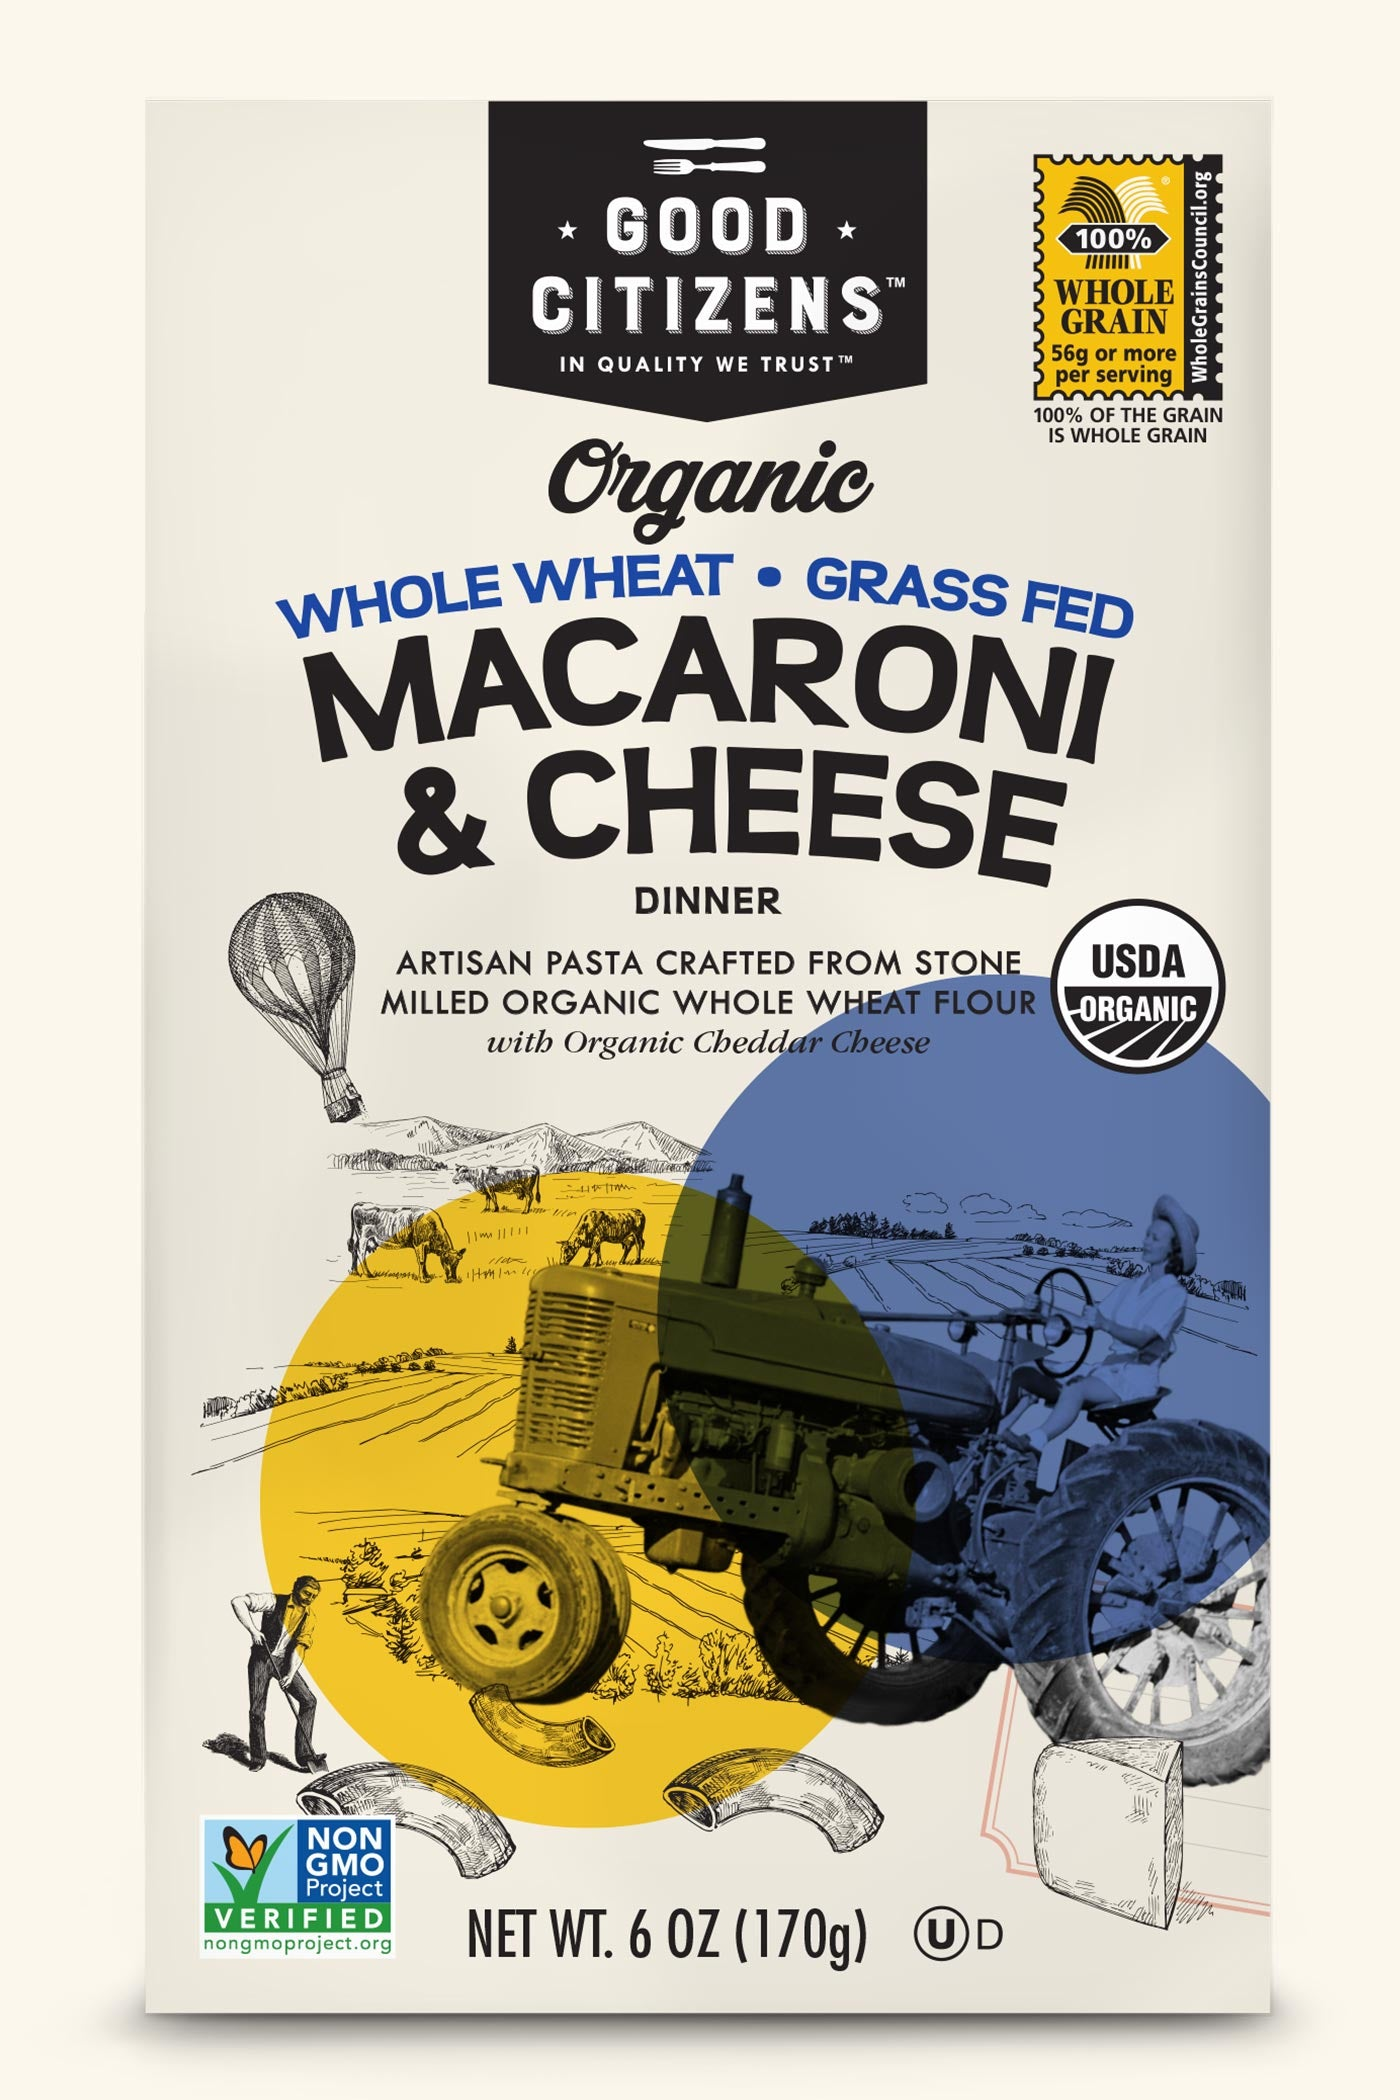 ORGANIC WHOLE WHEAT MACARONI & CHEESE